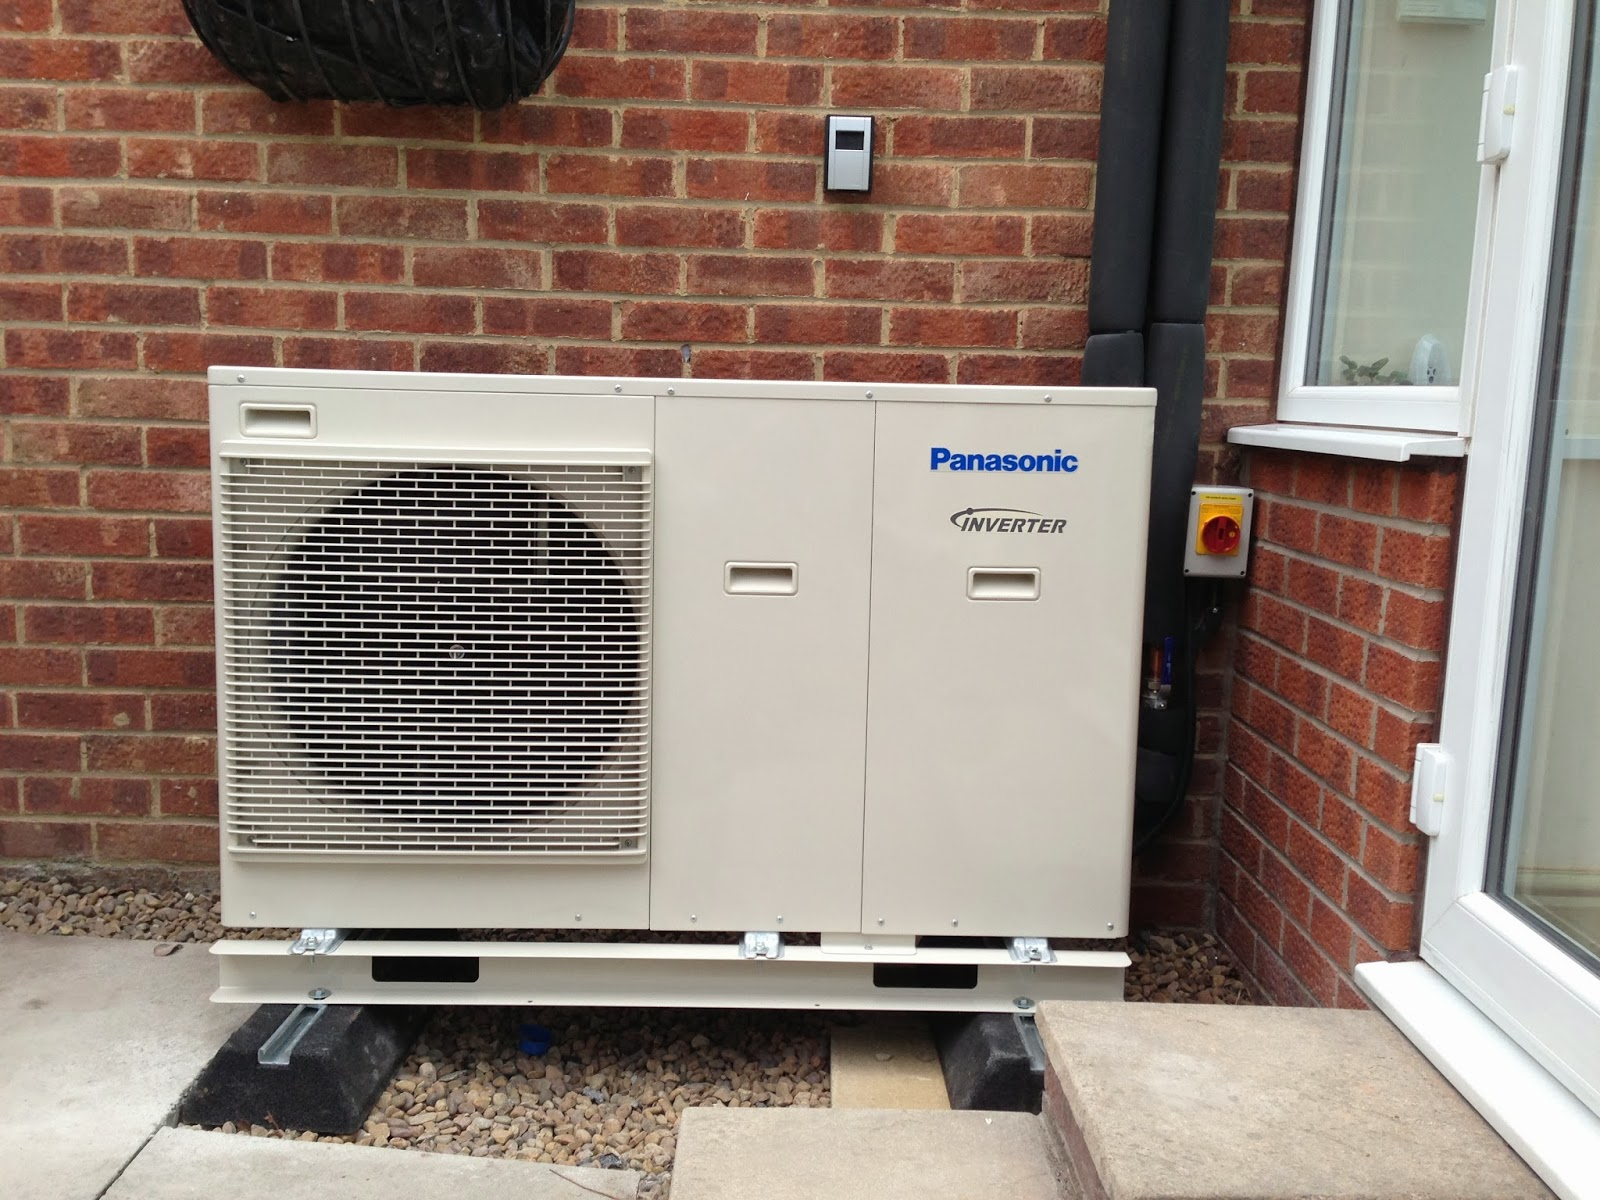 panasonic heat pump installed outside